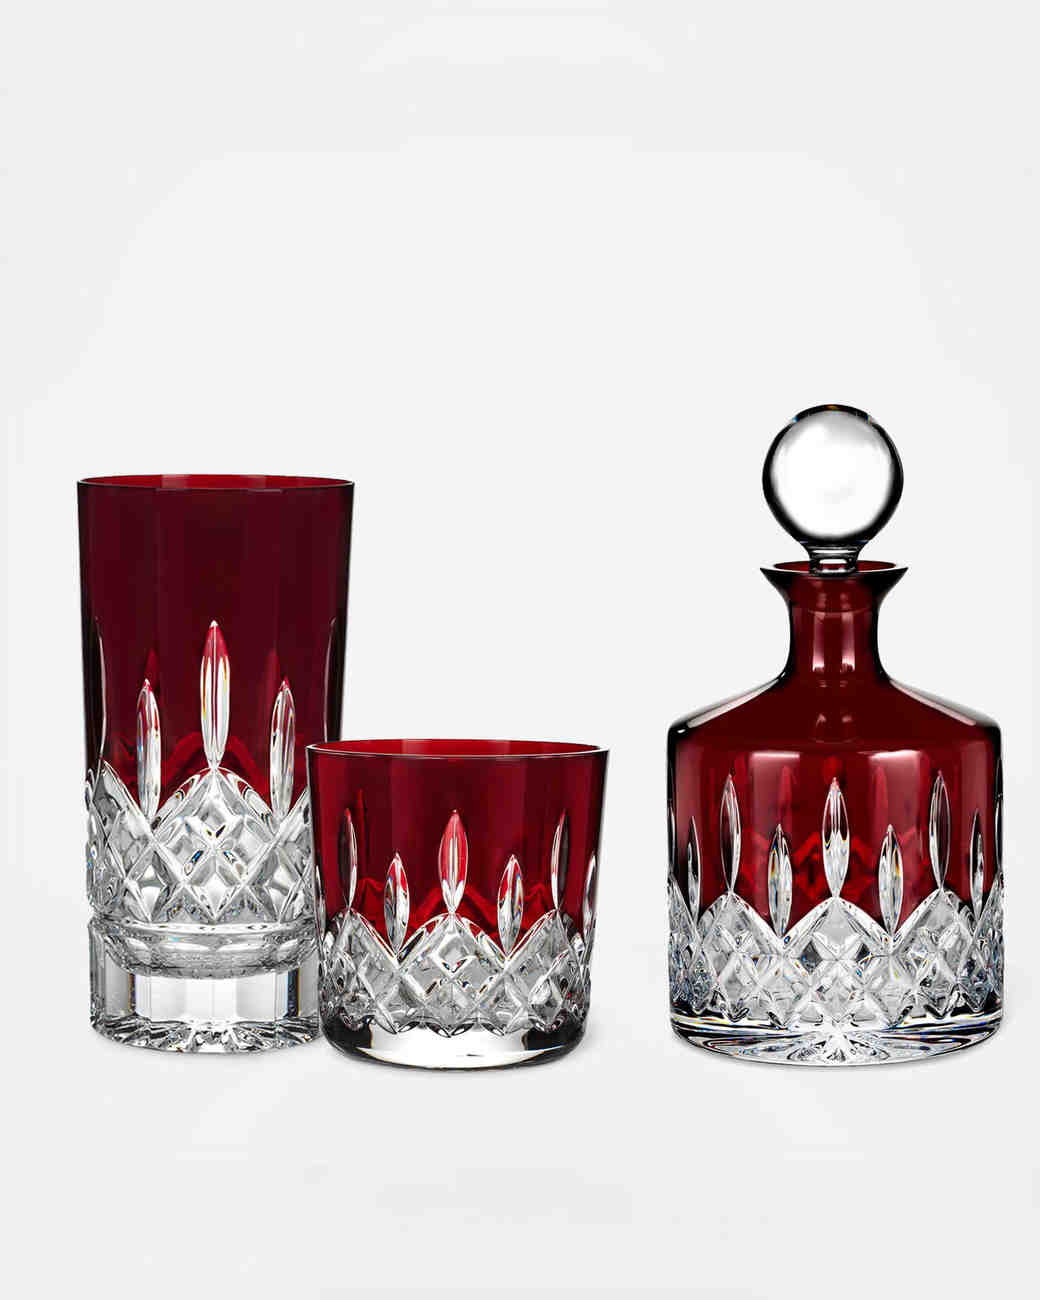 red dishware and decanter